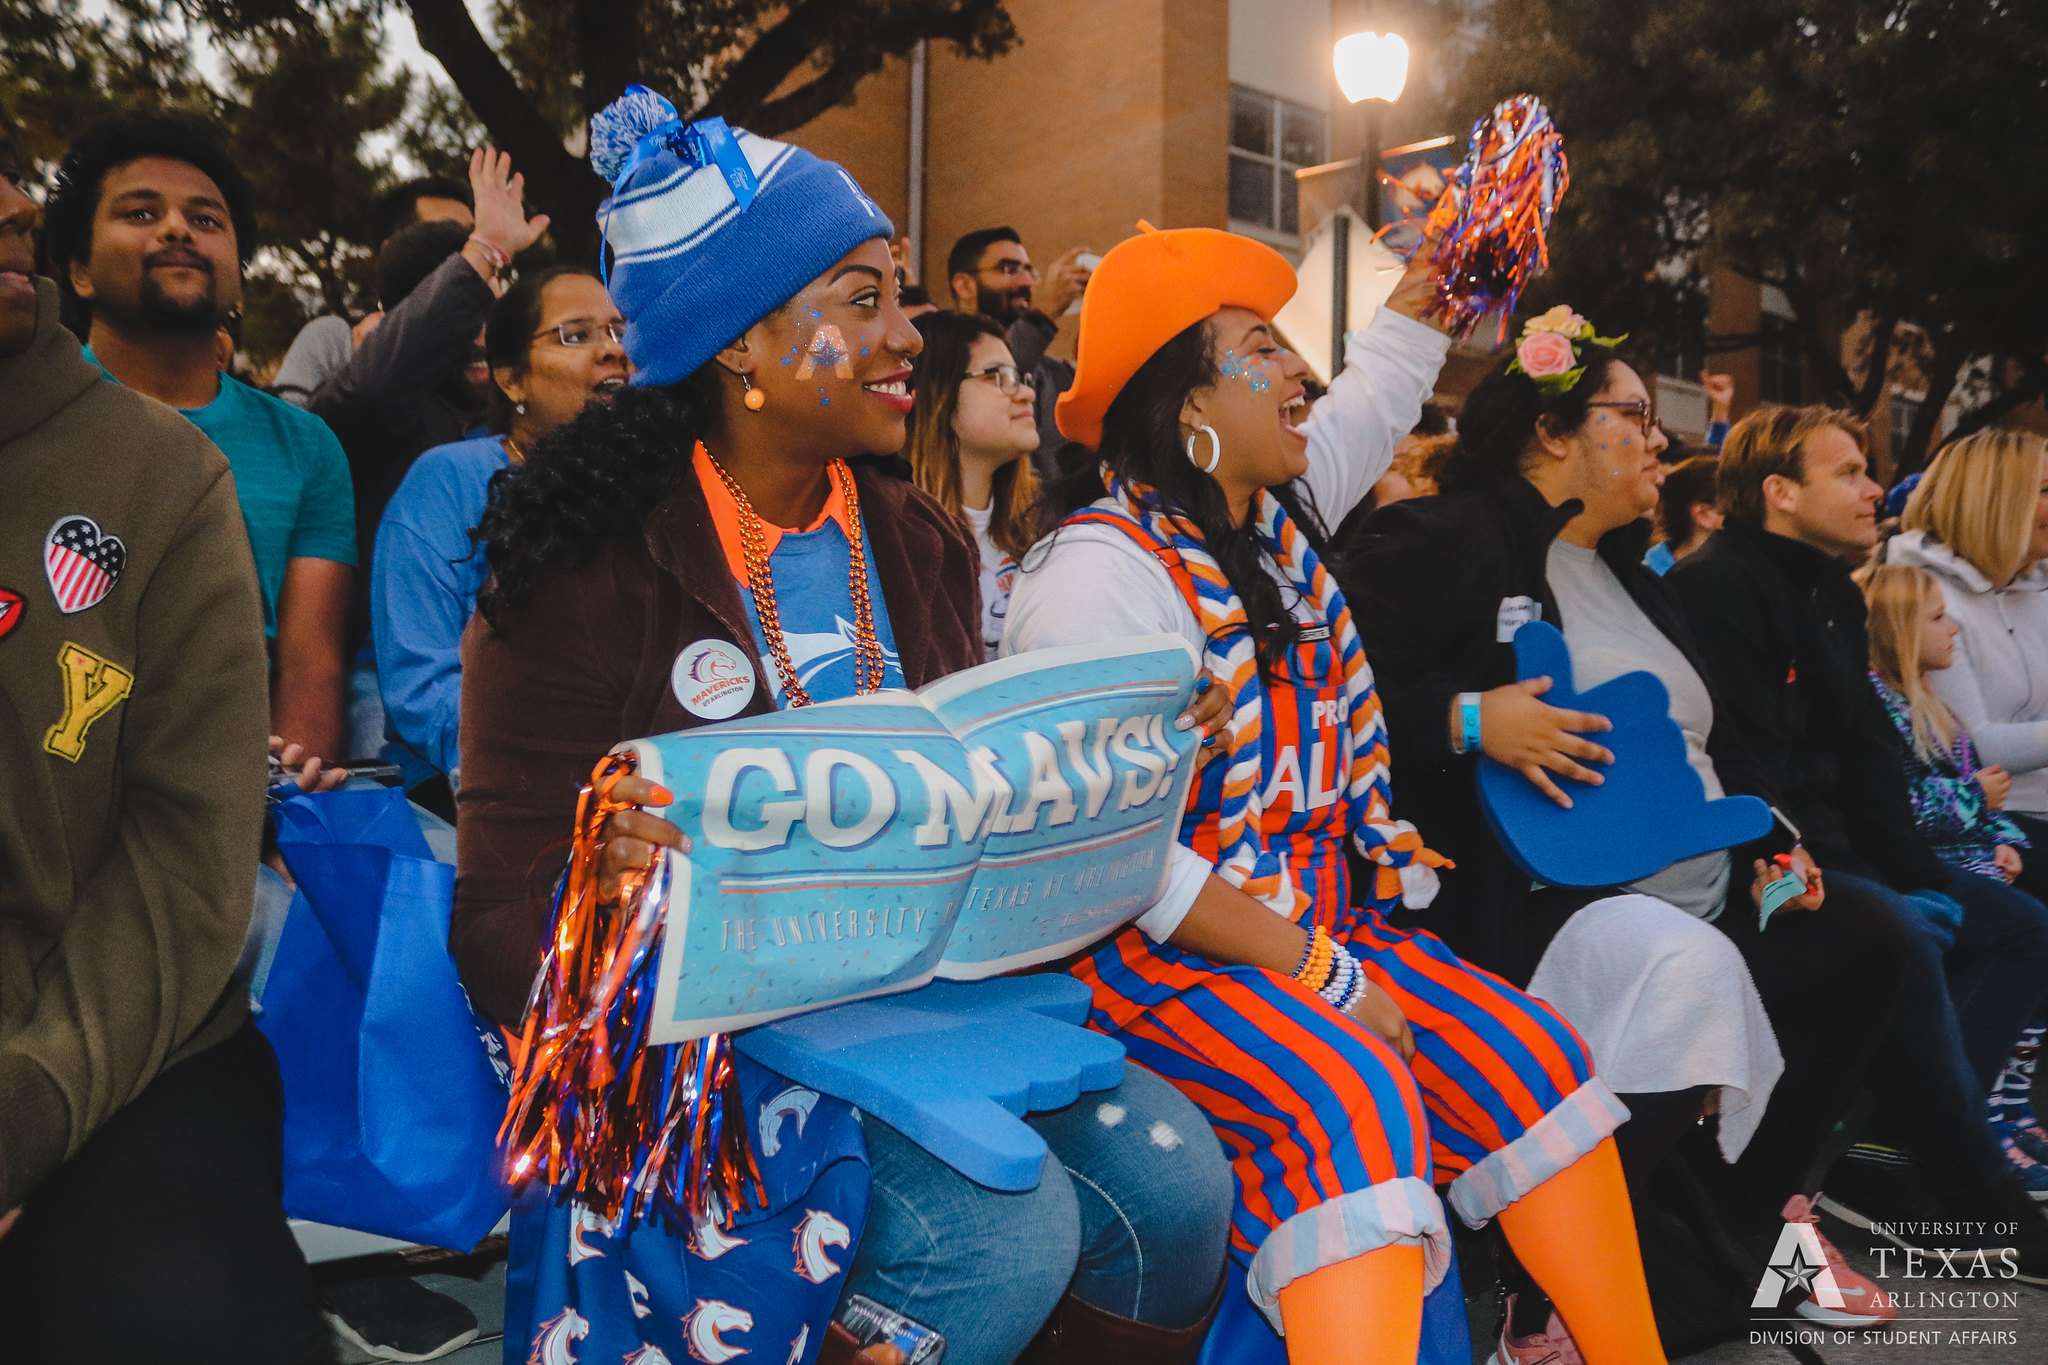 UTA students and a wrangler, a student spirit group, cheer while watching the UTA Homecoming Parade